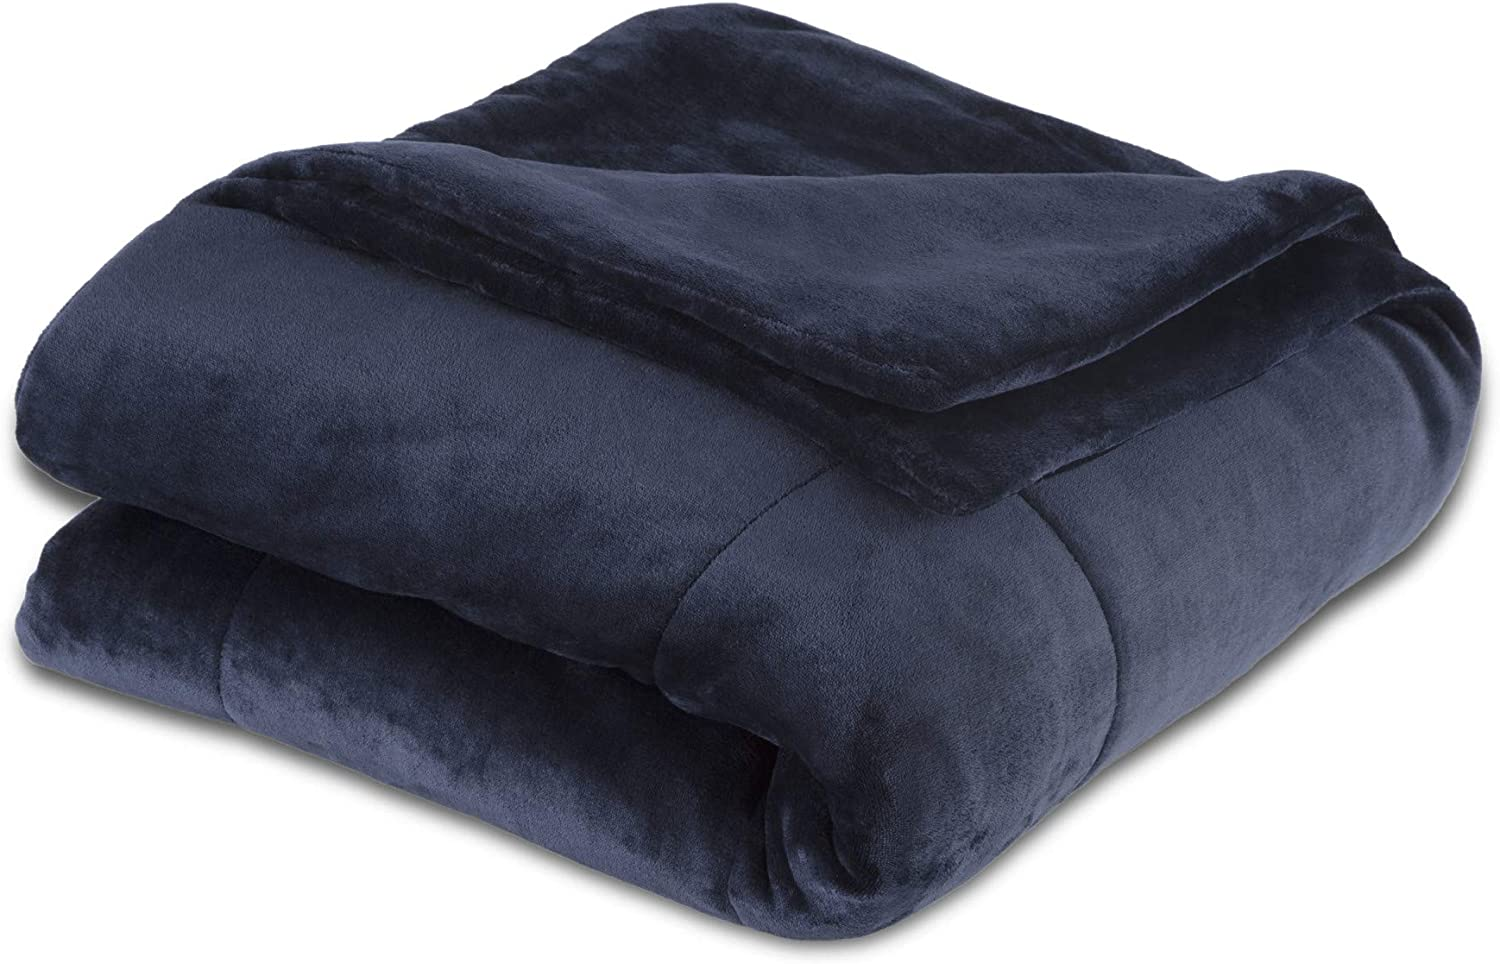 Vellux Plush Luxury Super Soft, Fluffy and Fuzzy Comfortable Lightweight, Warm and Cozy Microfiber Blanket for All Season, Full/Queen, Midnight Blue